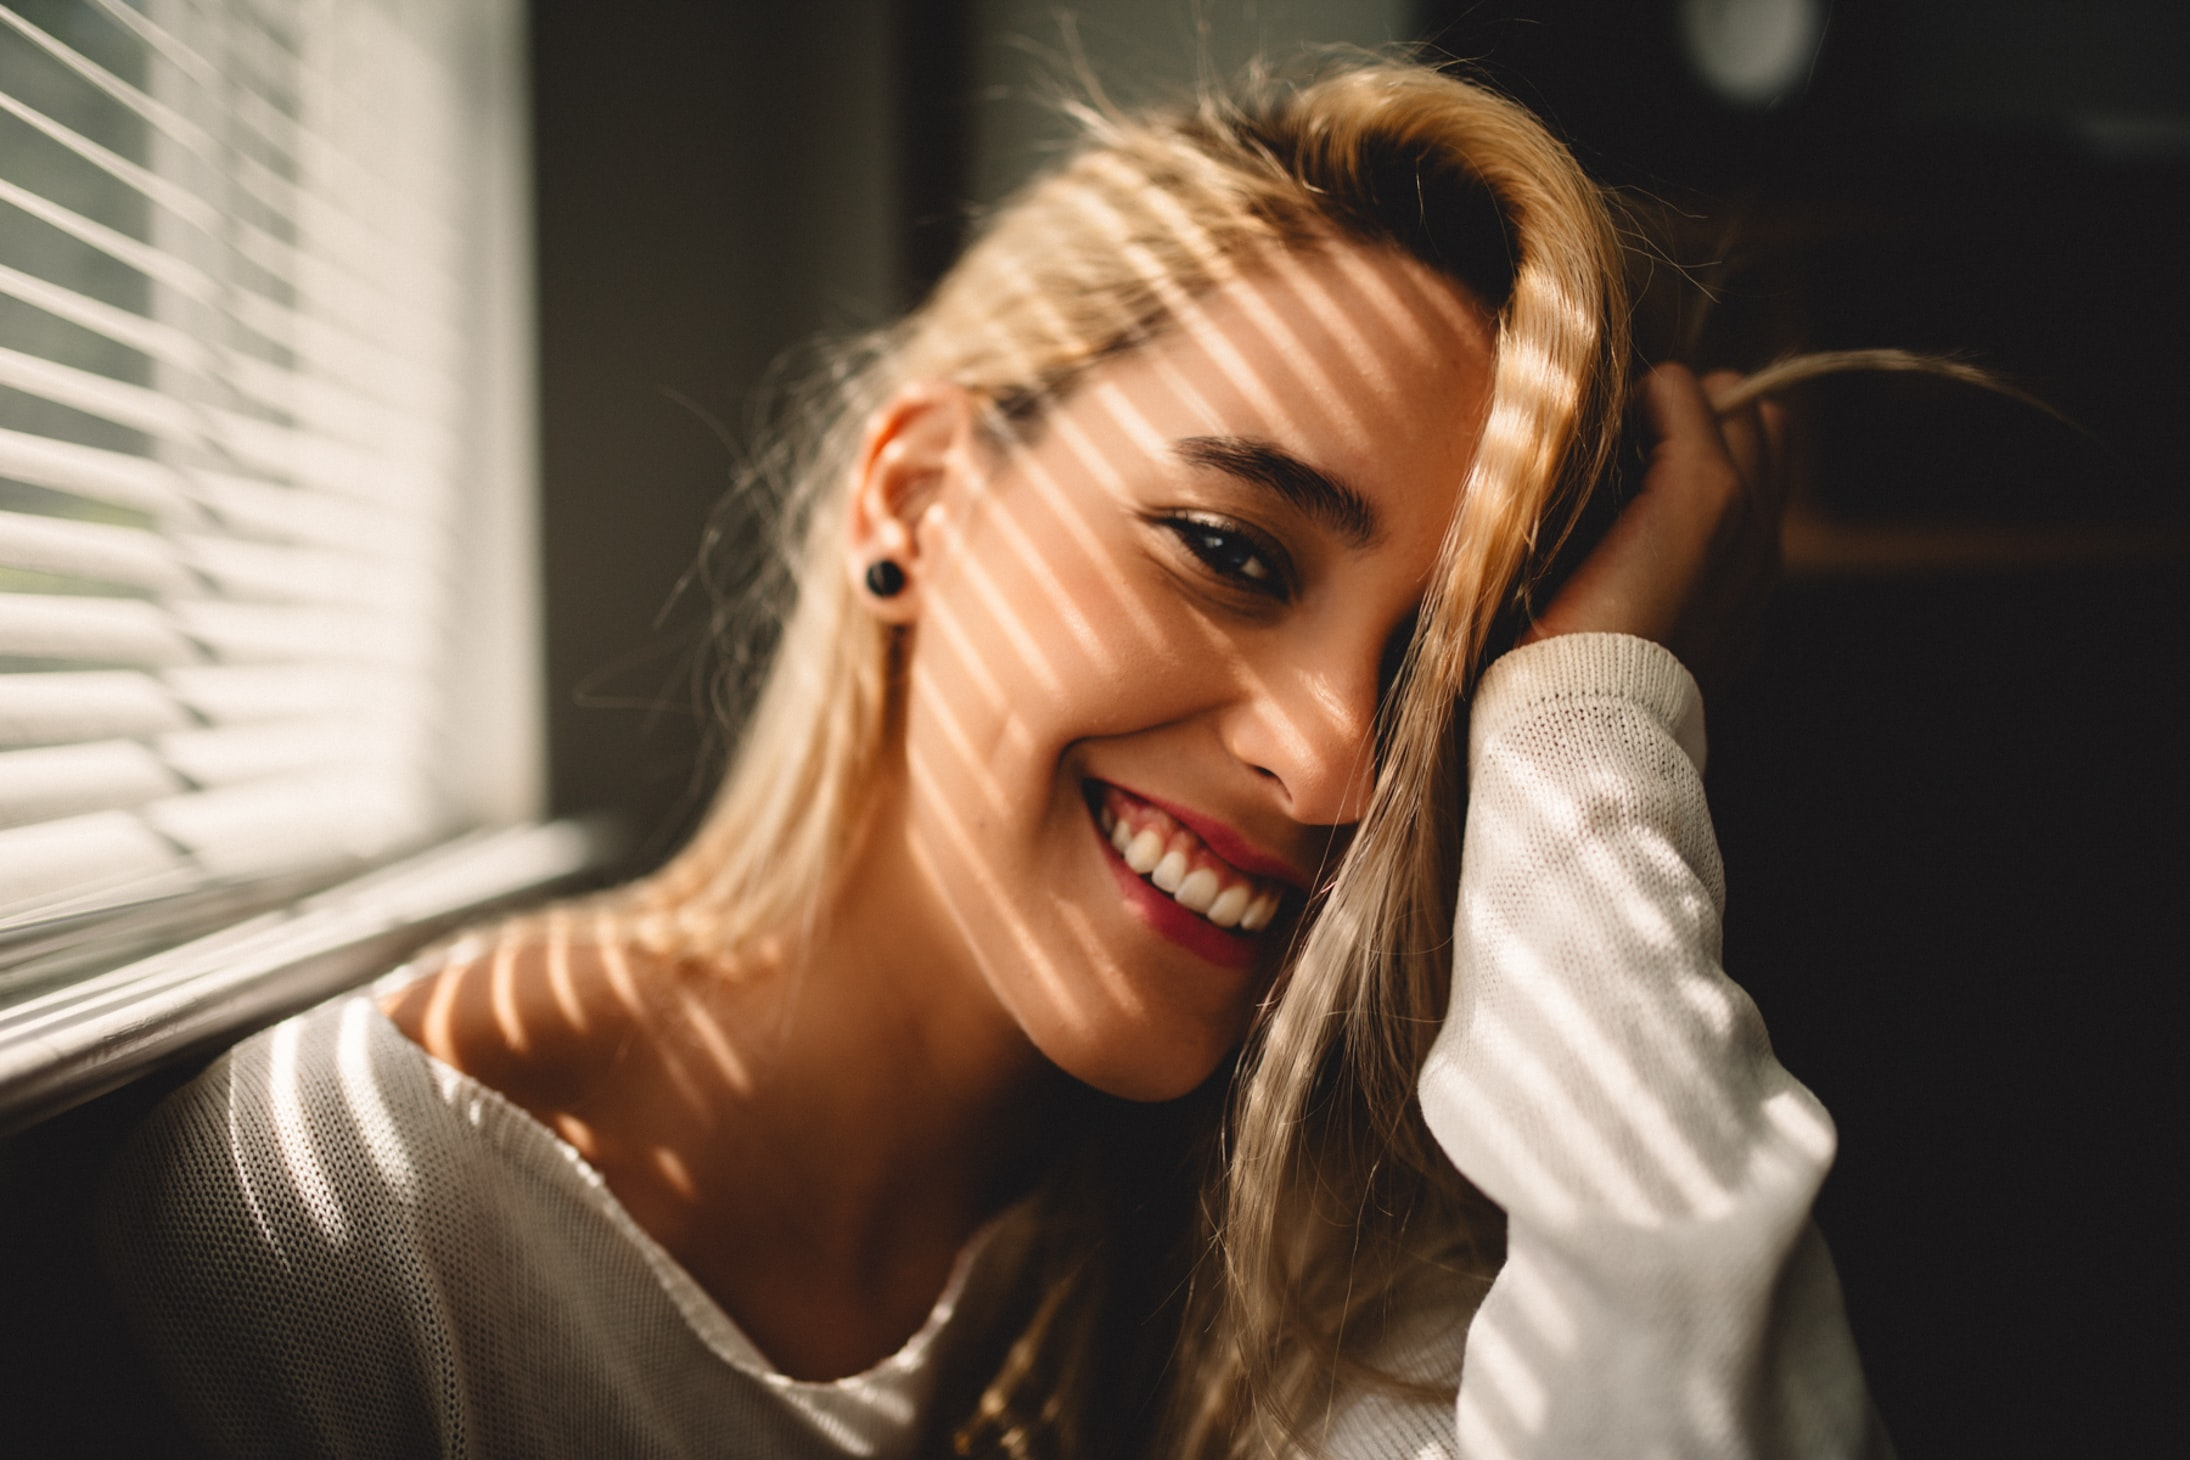 selective focus photography of smiling woman holding her hair beside window blinds